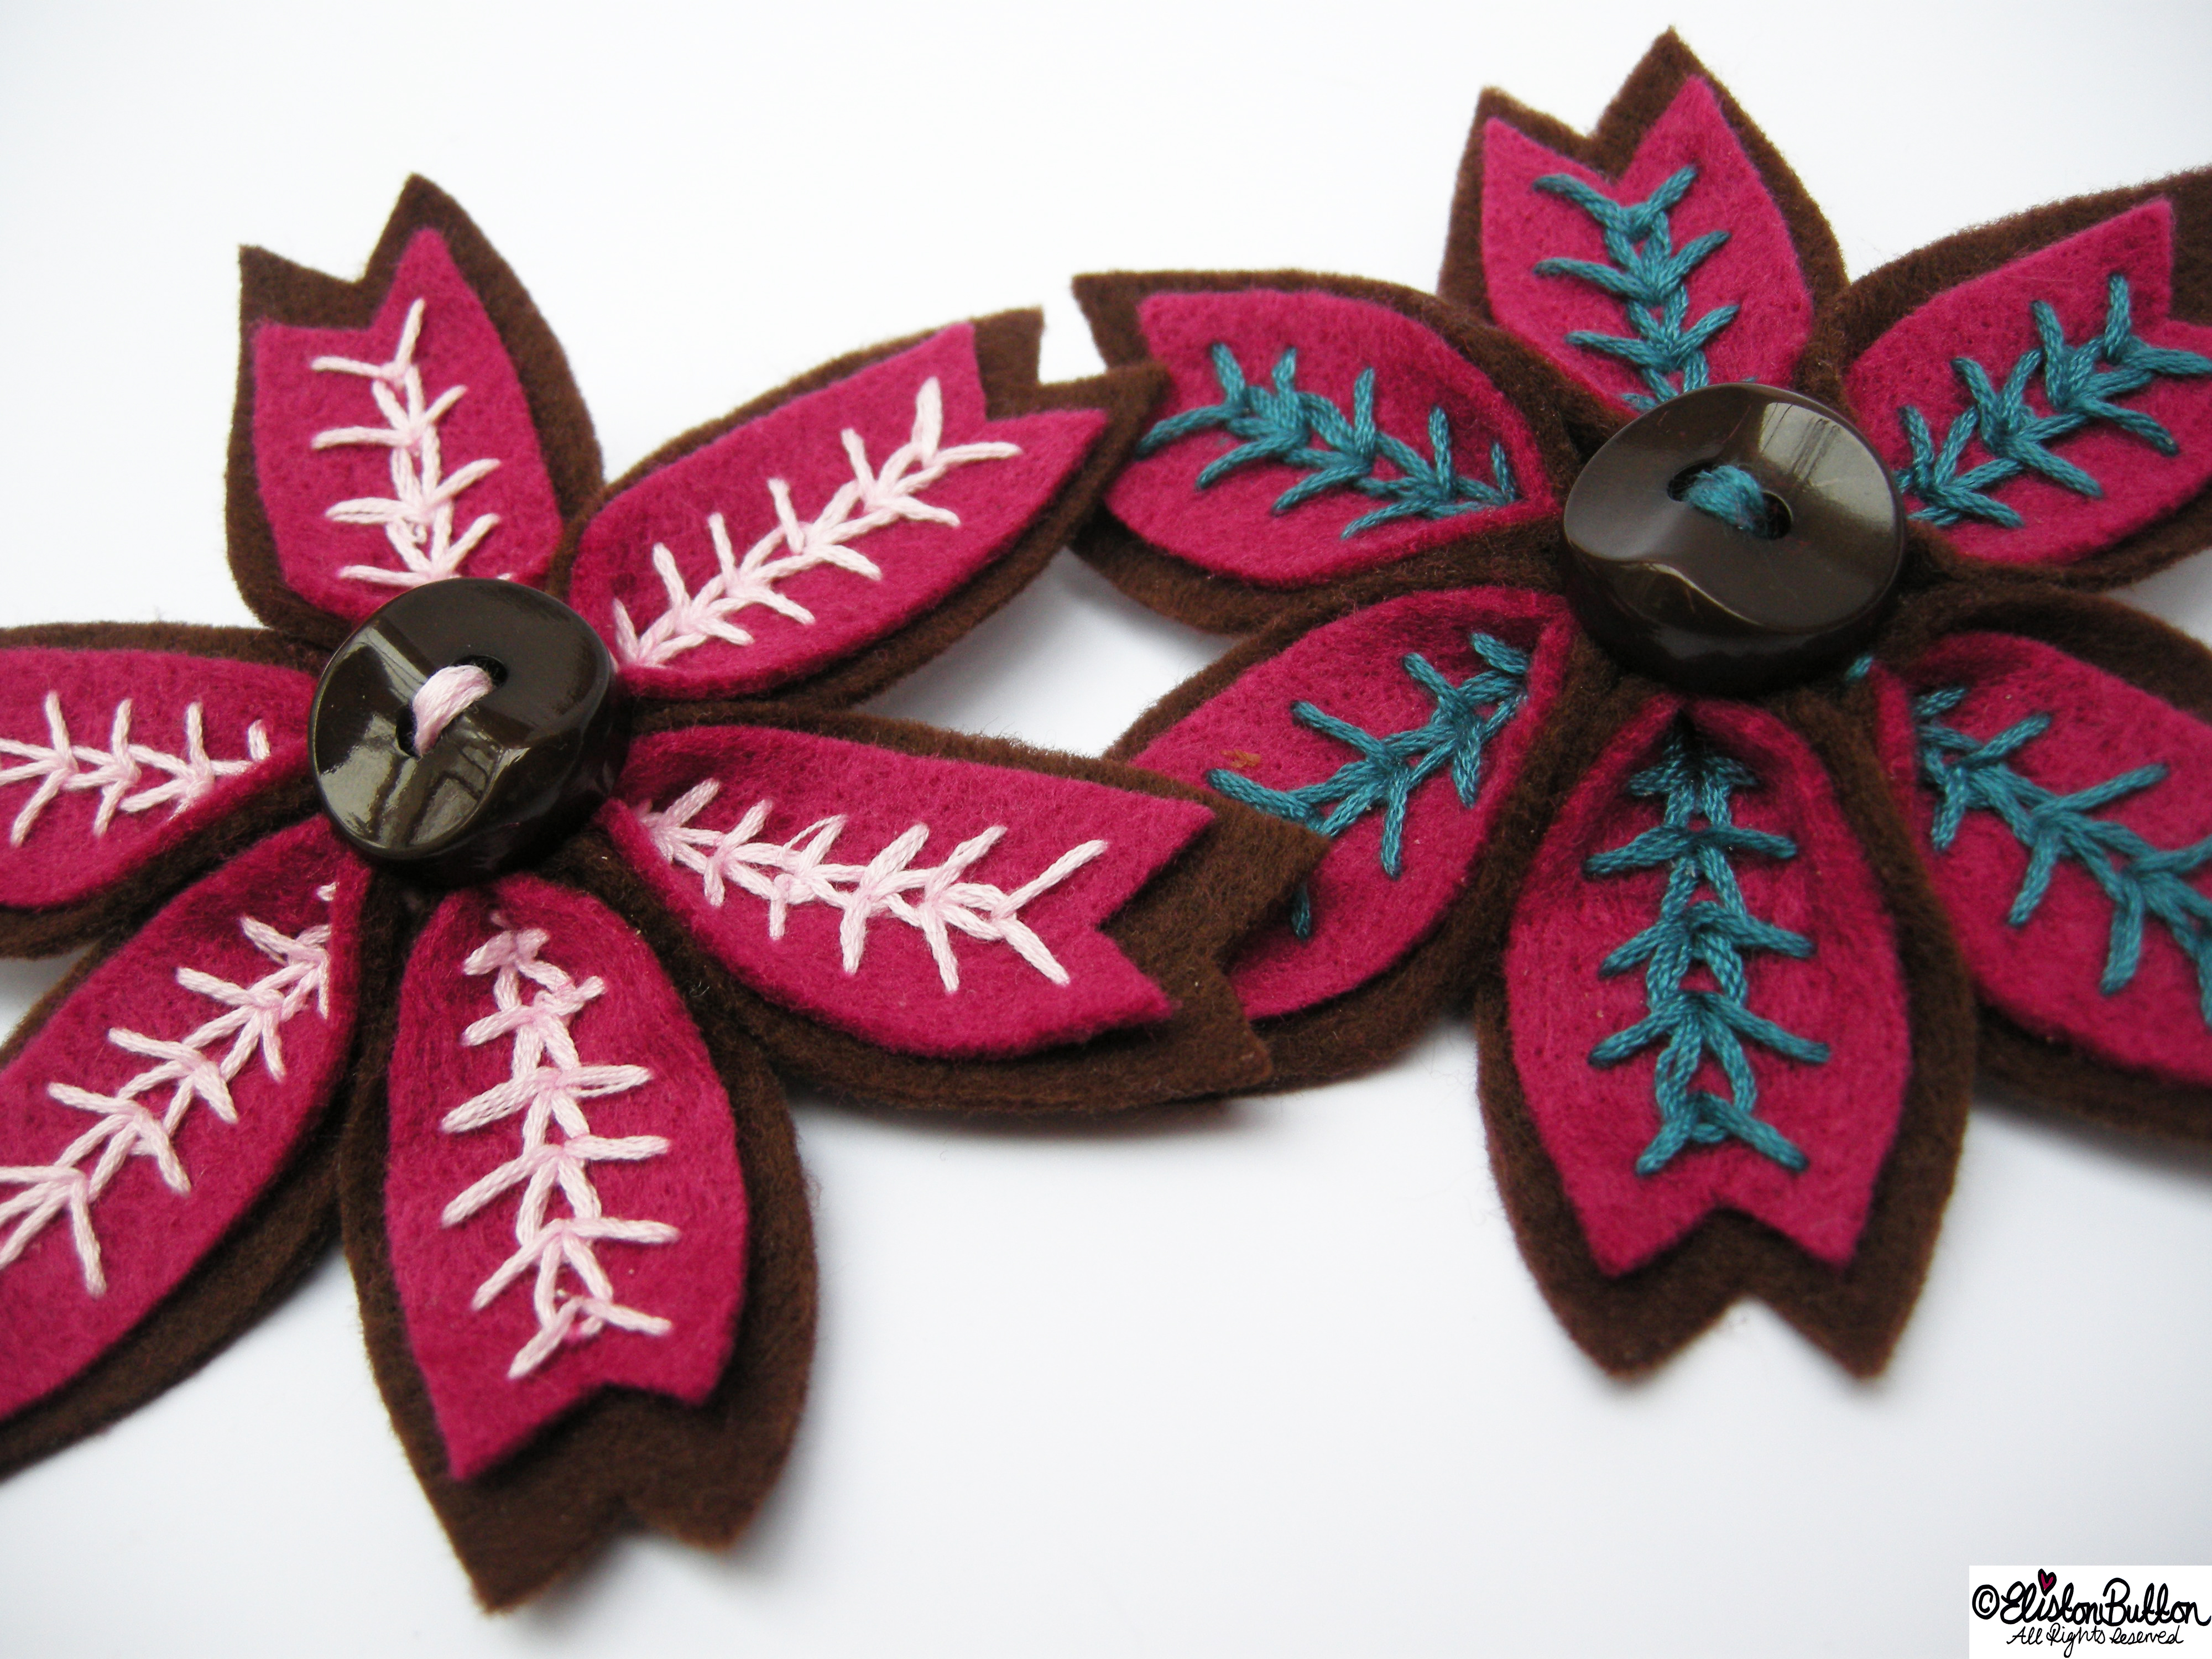 Raspberry and Chocolate Embroidered Felt Flower Brooches - Teal and Pastel Pink - 27 Before 27 - Raspberry and Chocolate at www.elistonbutton.com - Eliston Button - That Crafty Kid – Art, Design, Craft & Adventure.